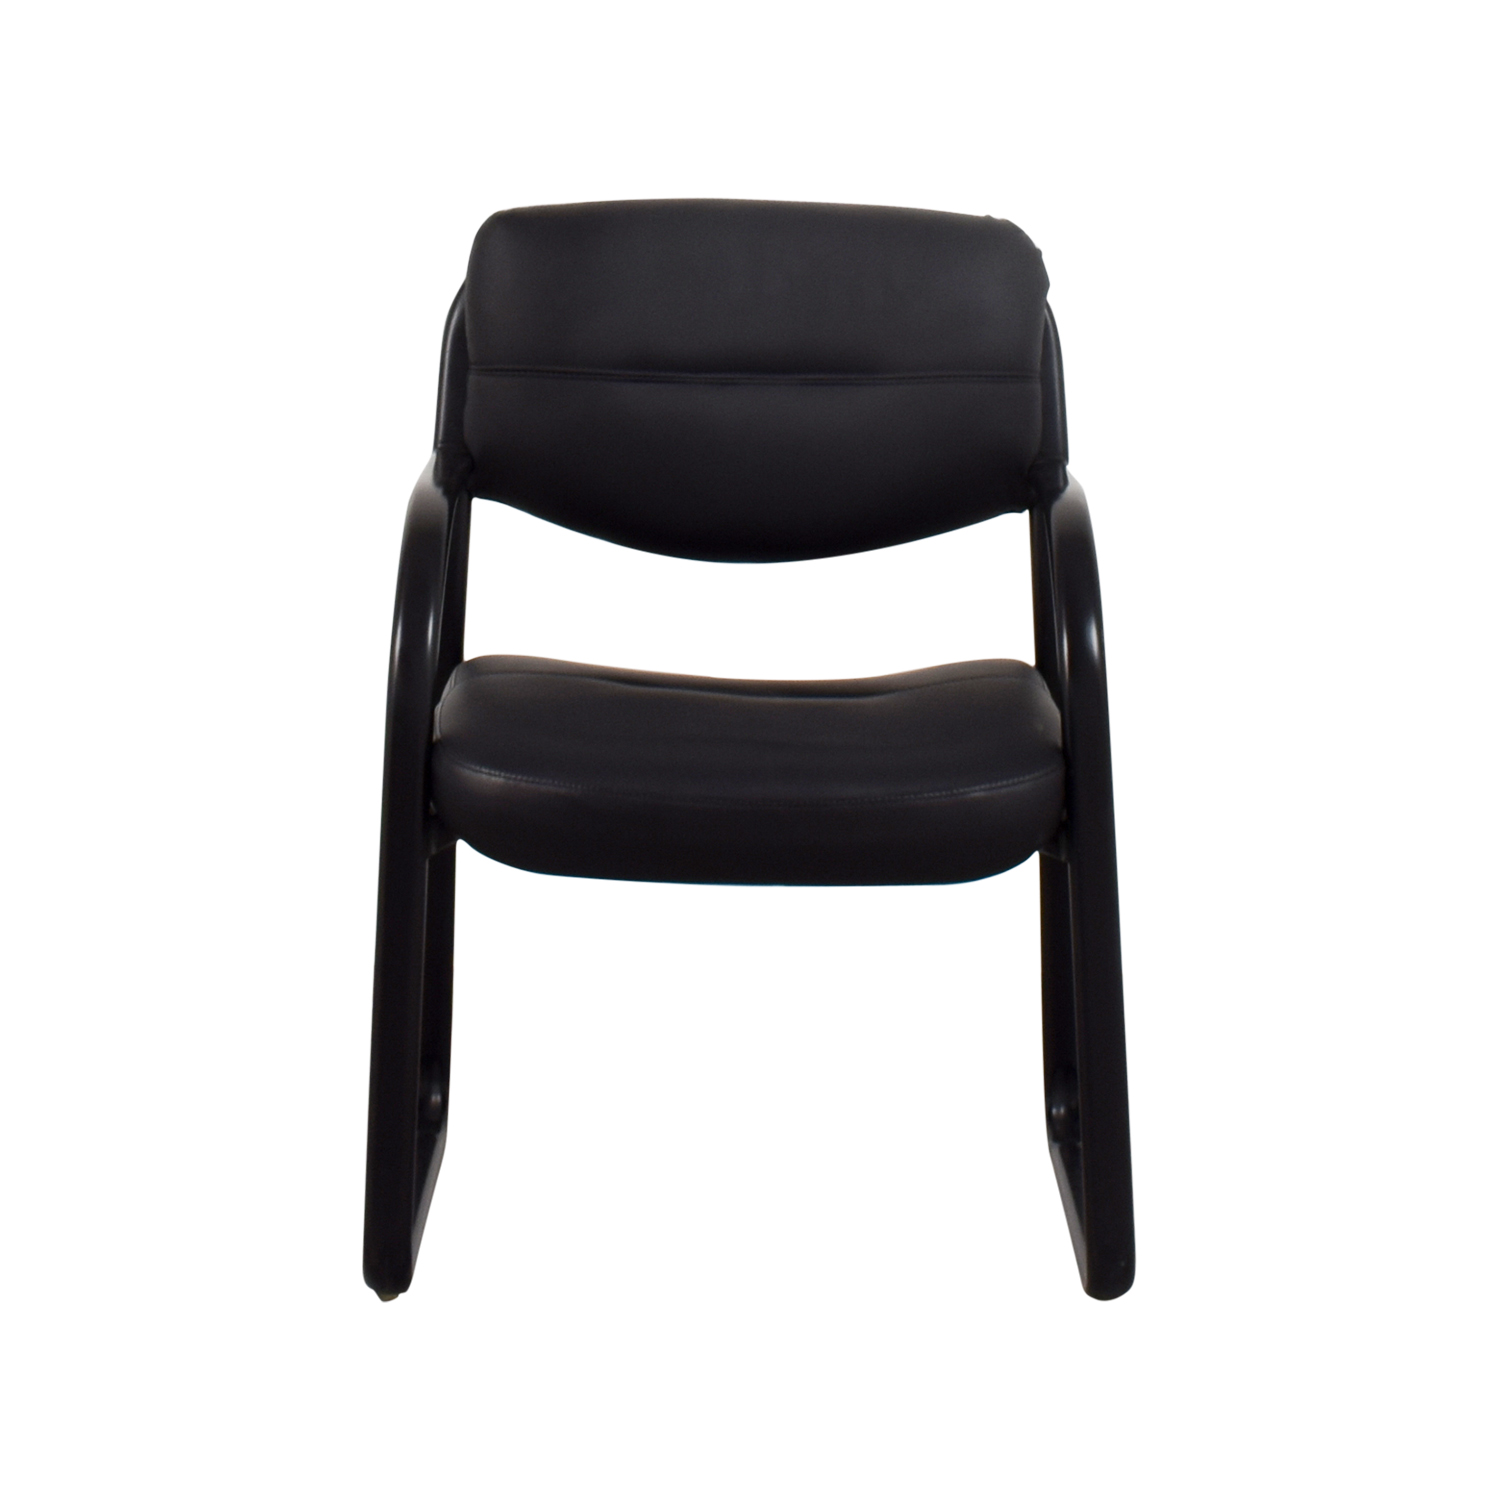 Black Leather Chair / Chairs